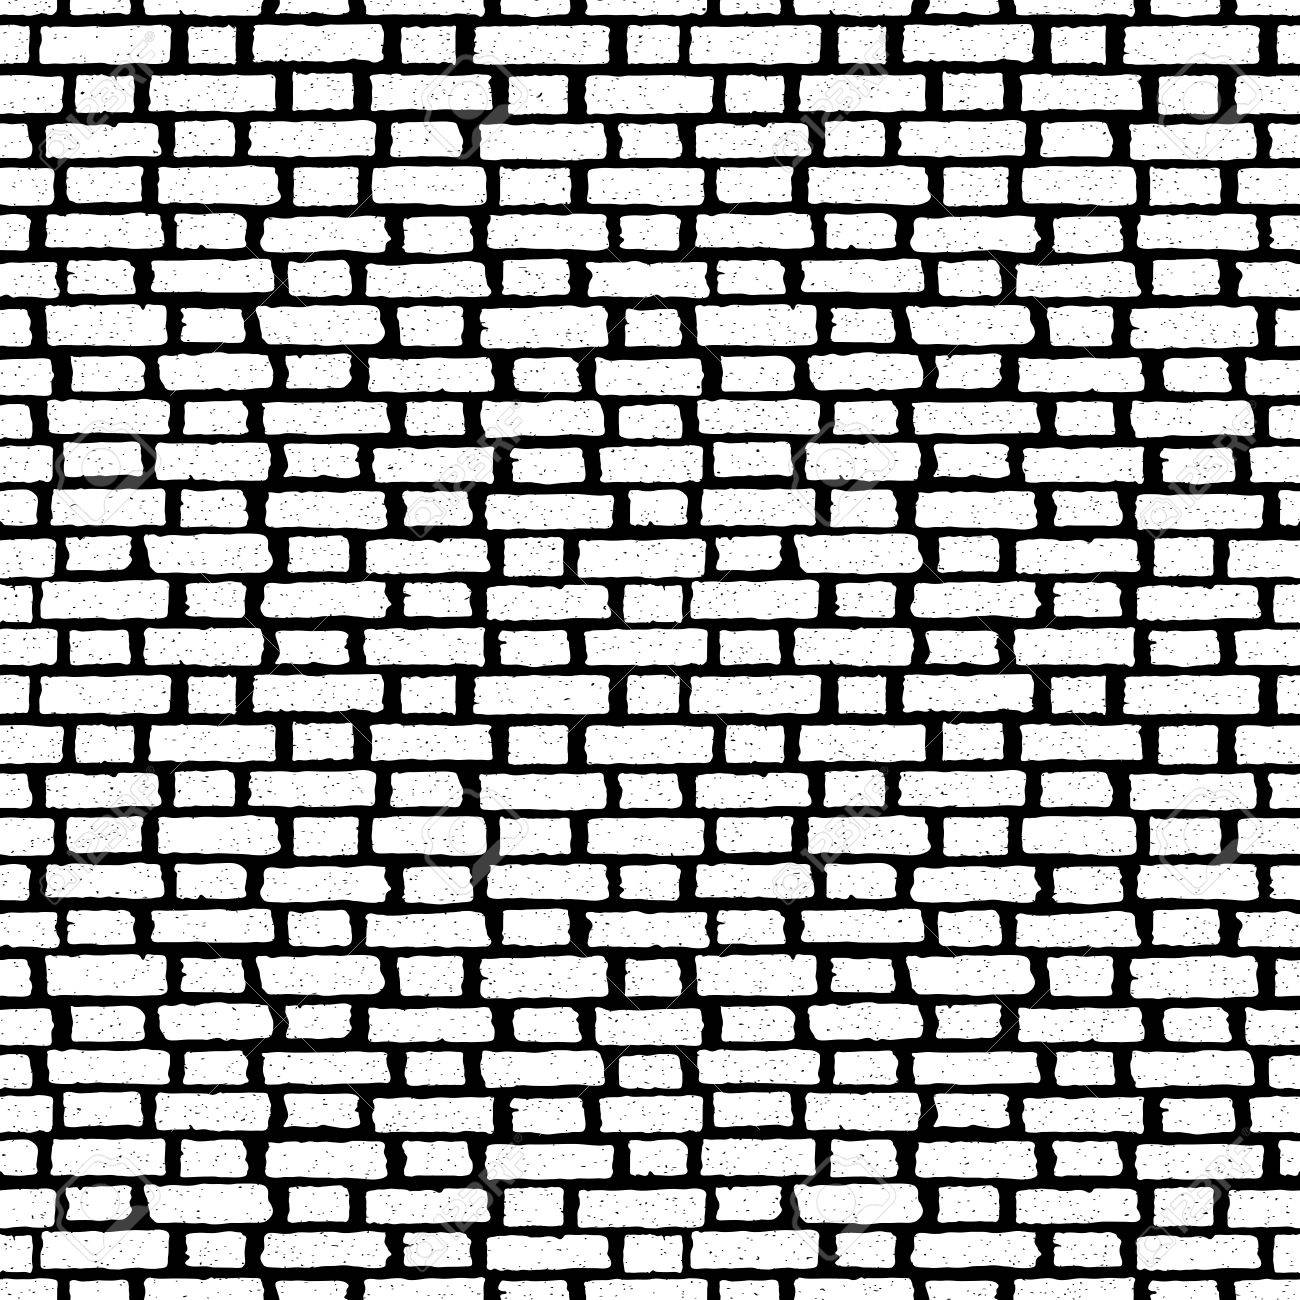 Brick Wall Tile Seamless Pattern With Bricks Vector Texture For Wallpapers